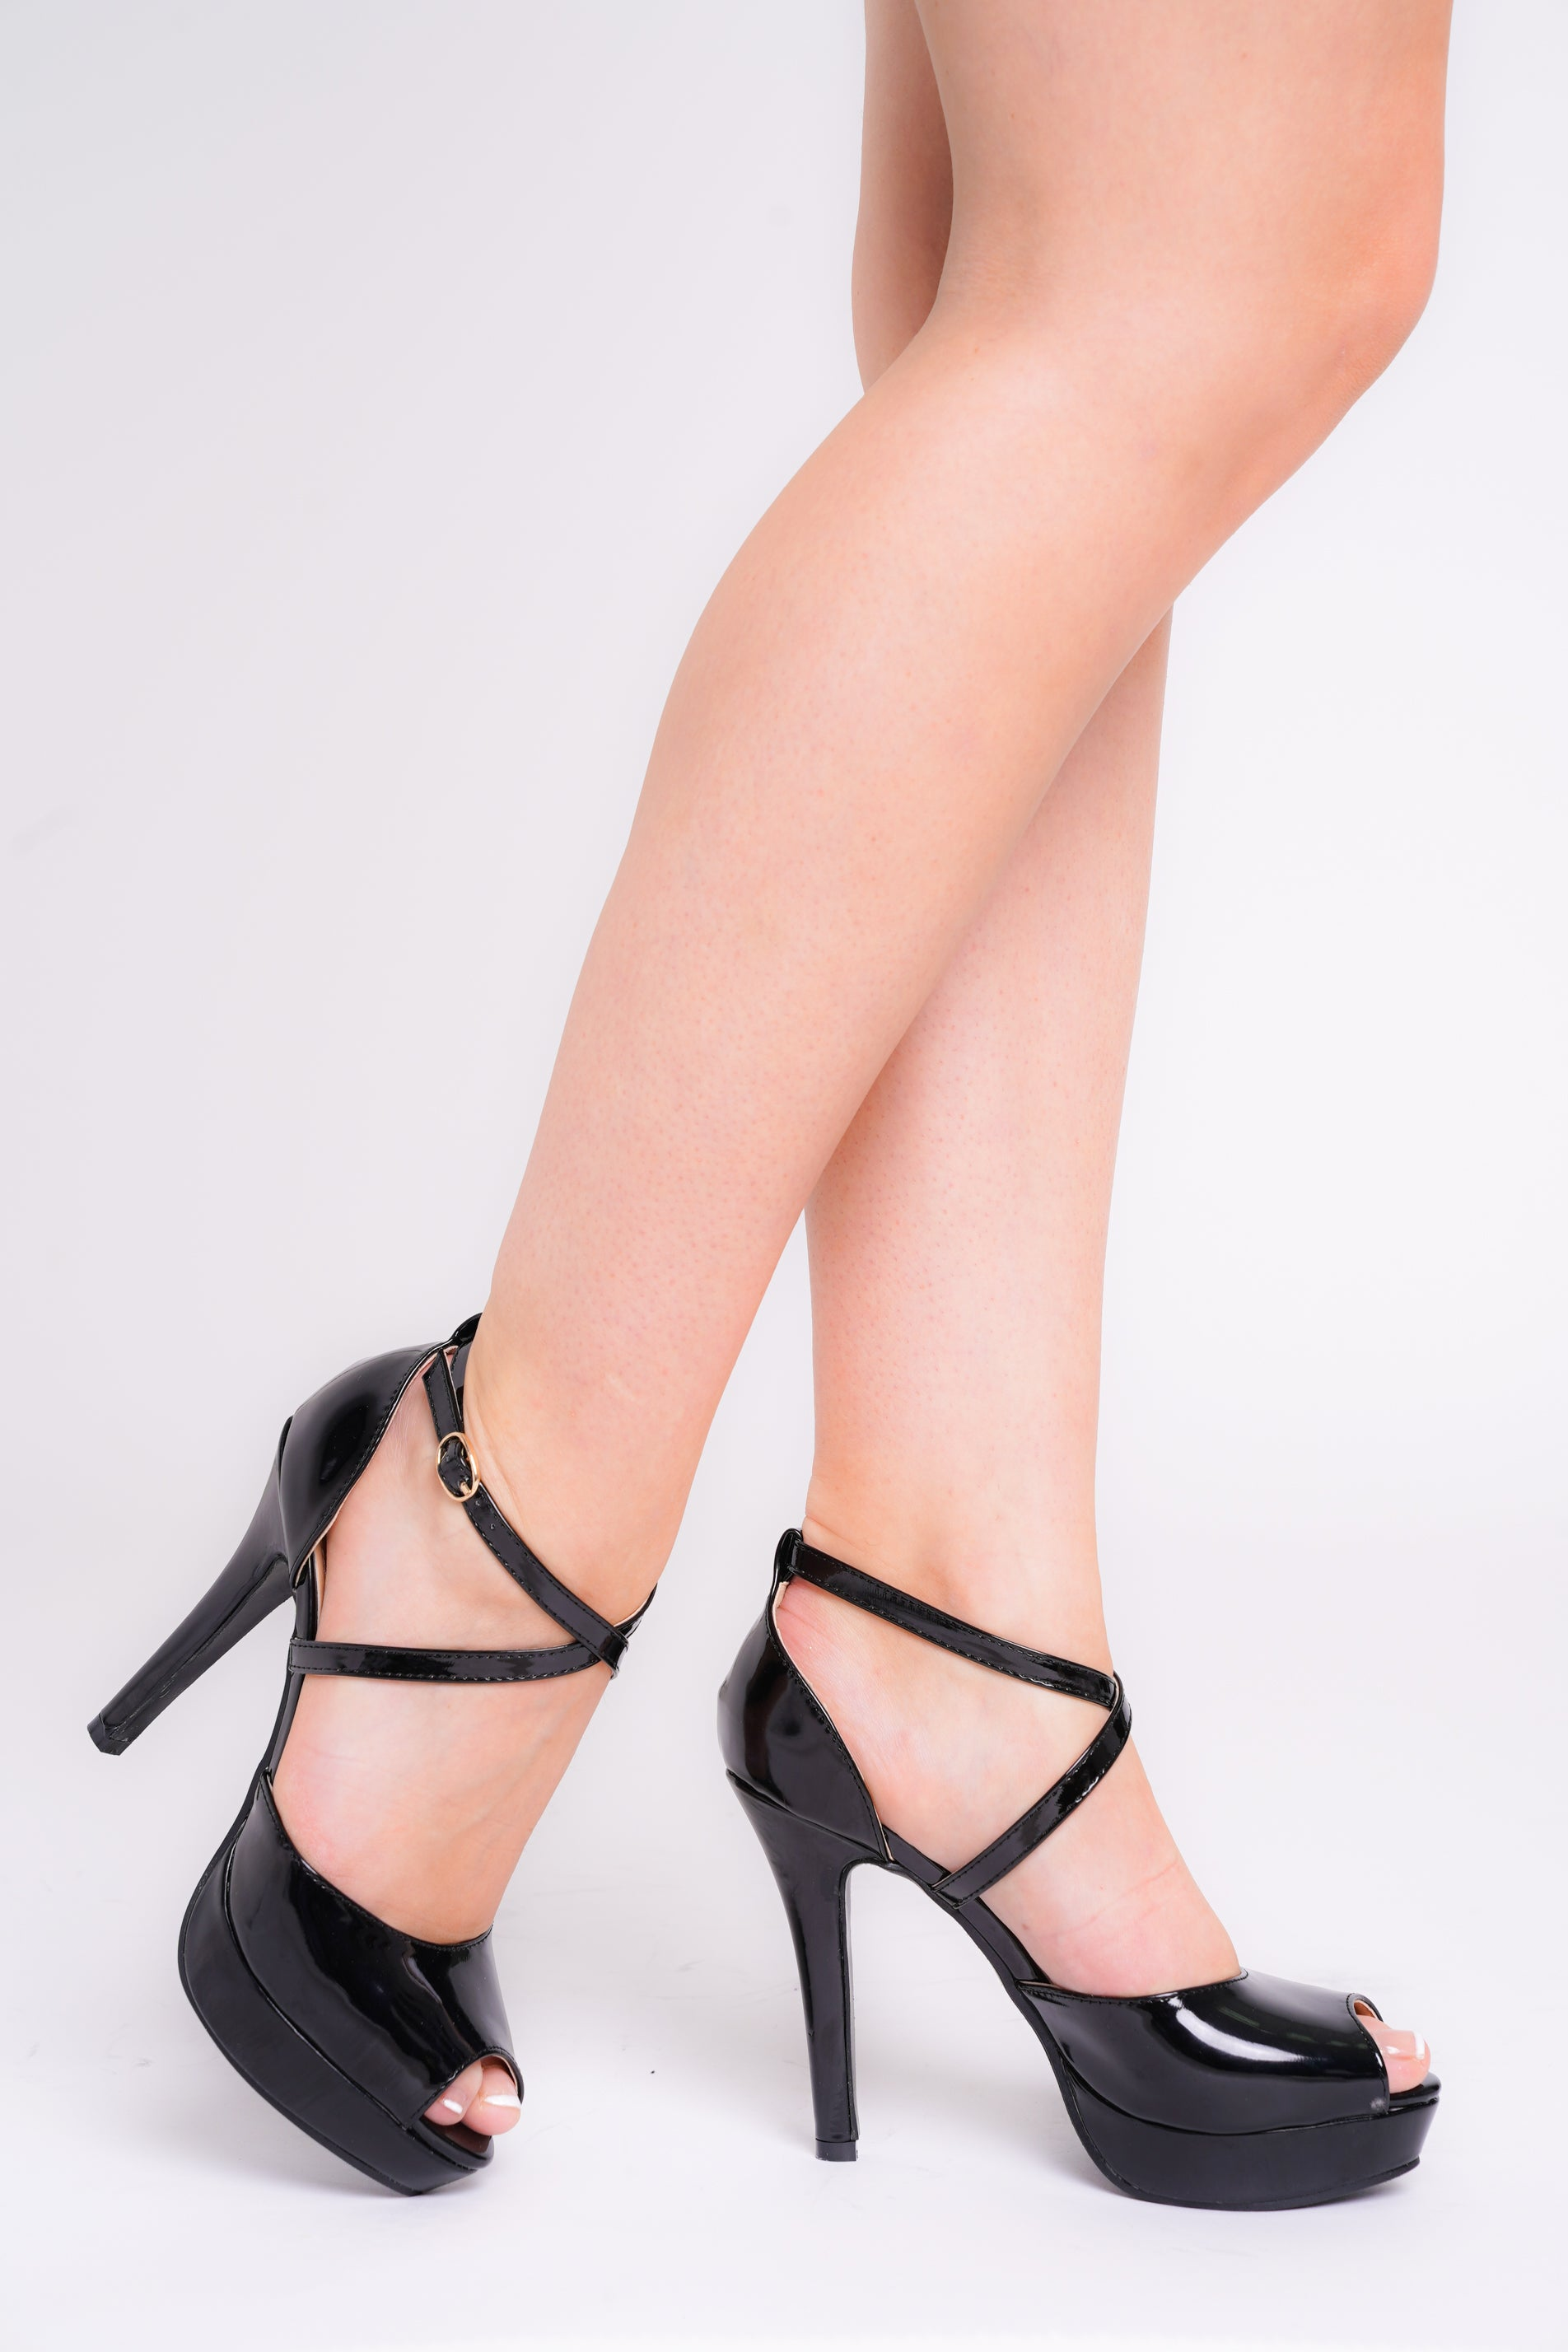 Mia Black Patent Peep Toe Cross Over Strap Platform Heels